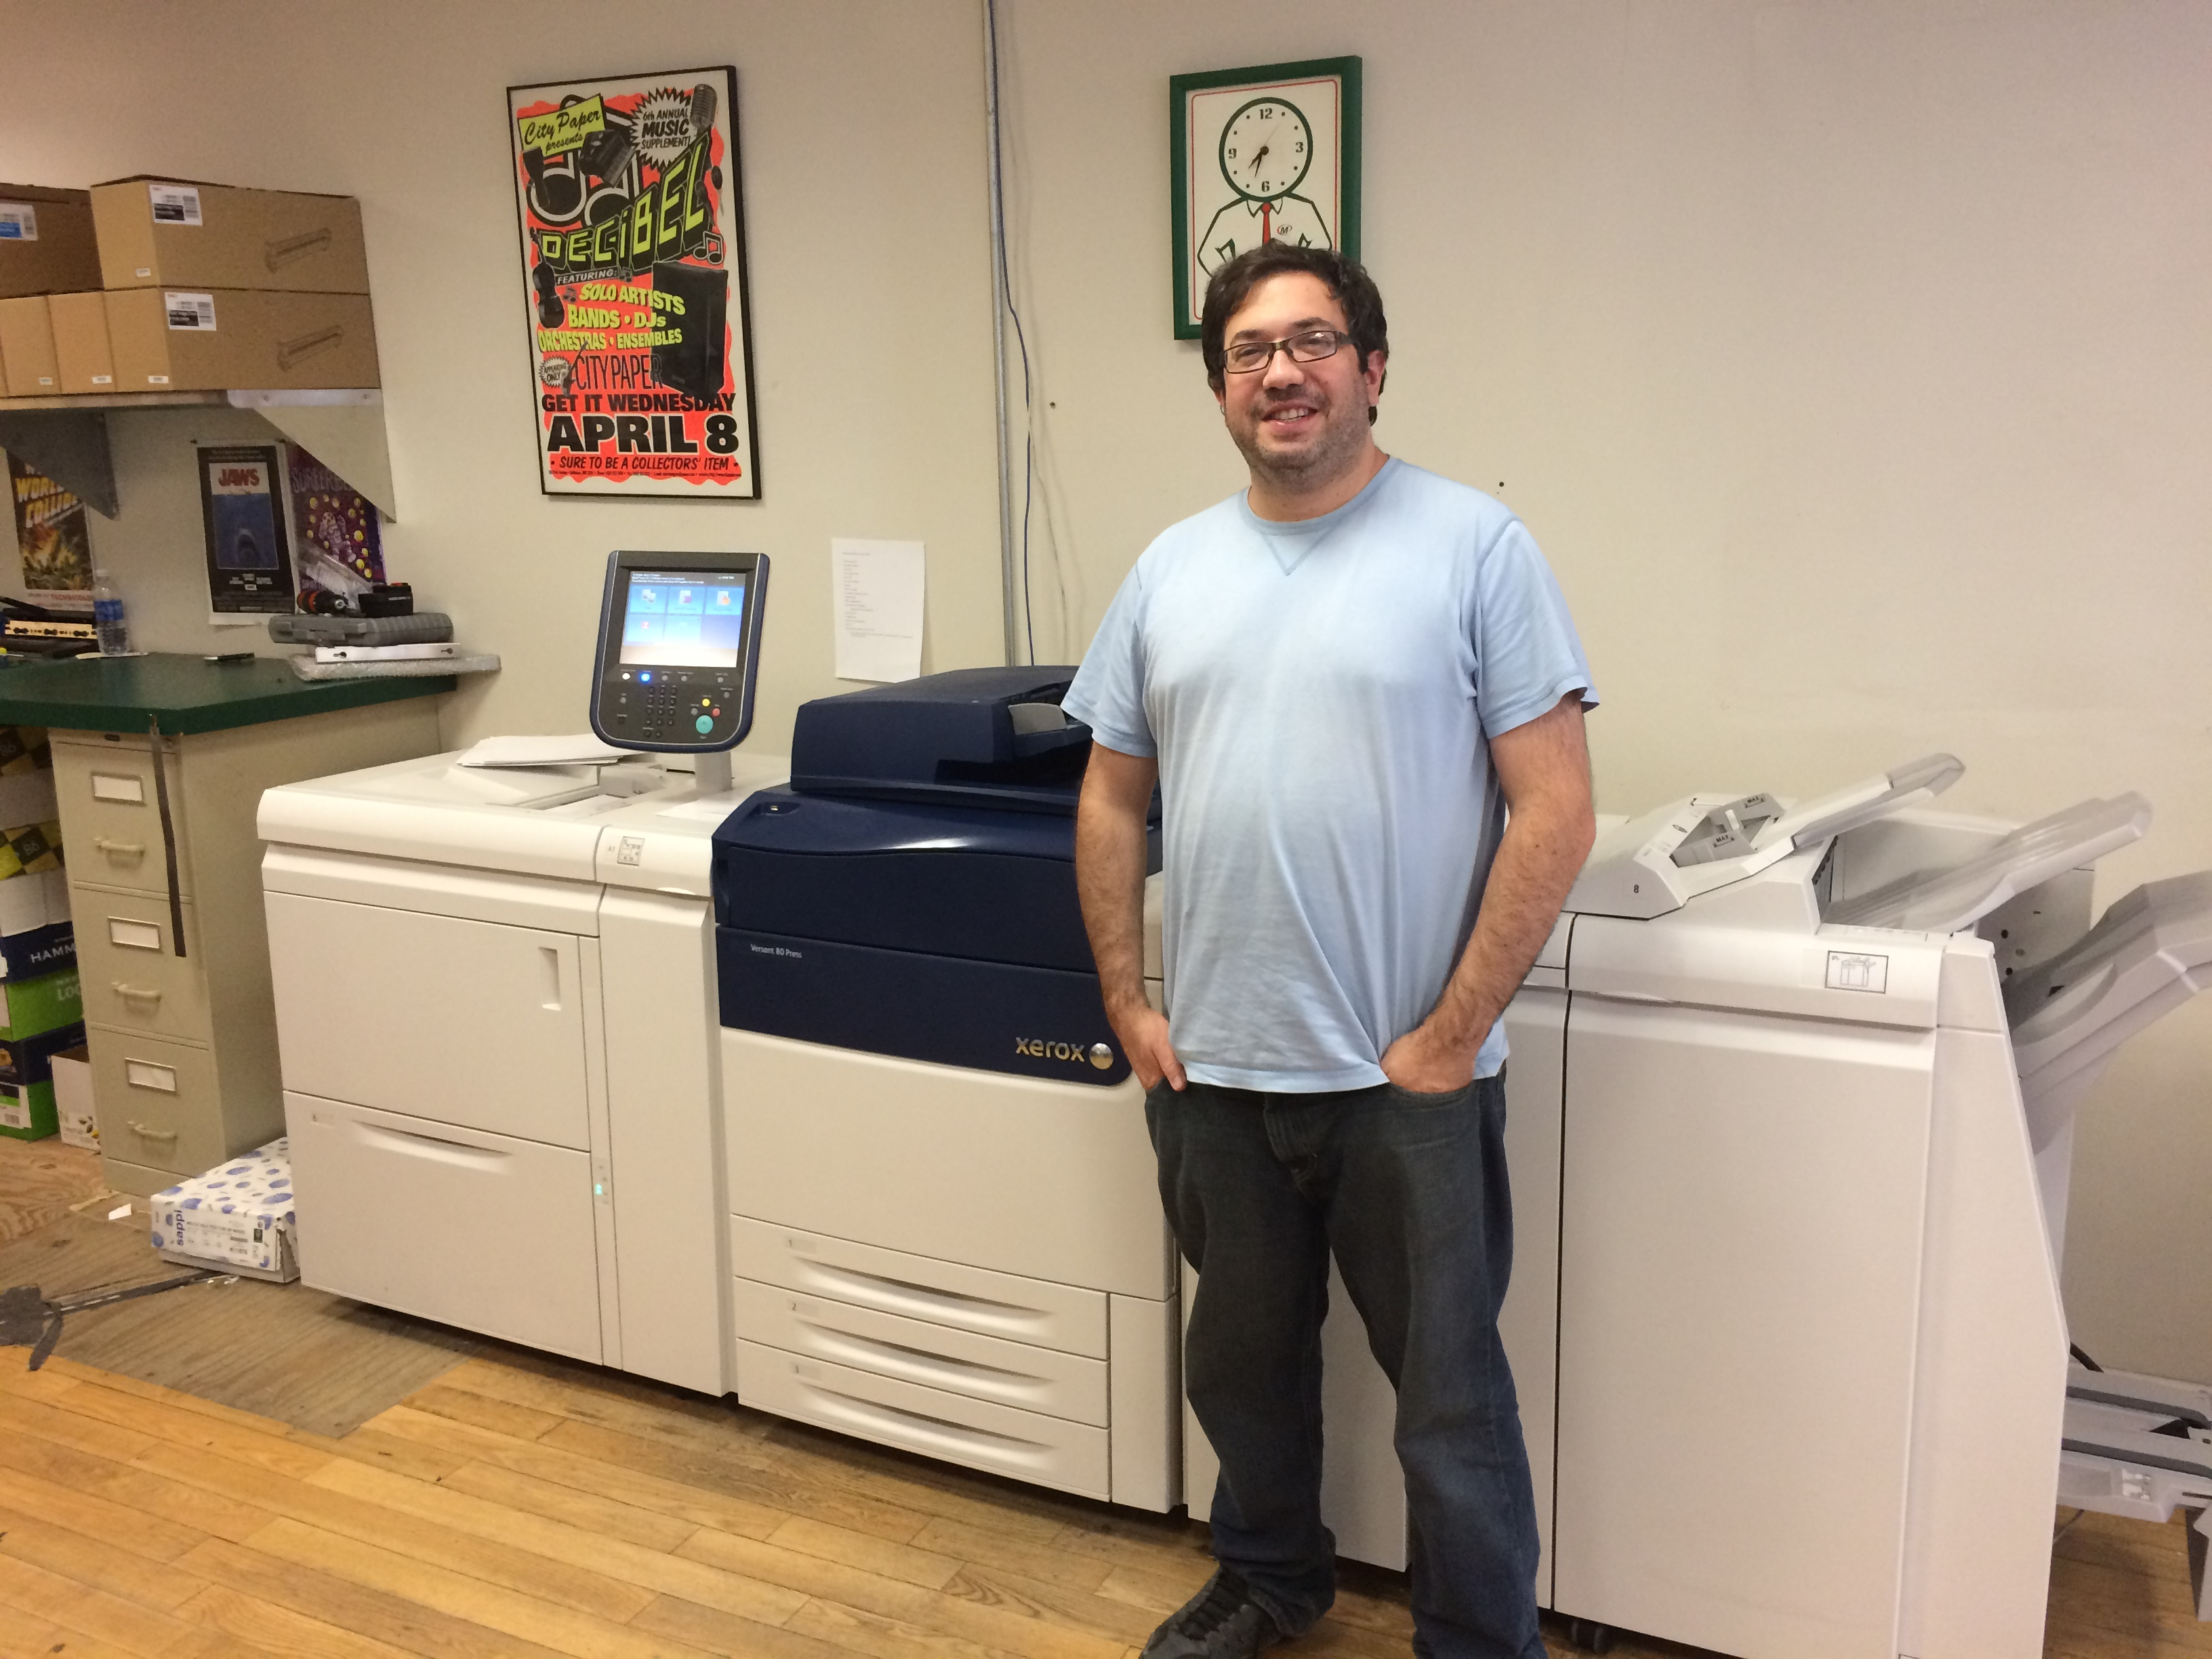 Wayne Herman's digital print, design and marketing center in Brooklyn is equipped with a state-of-the-art Xerox Versant 80 digital press.